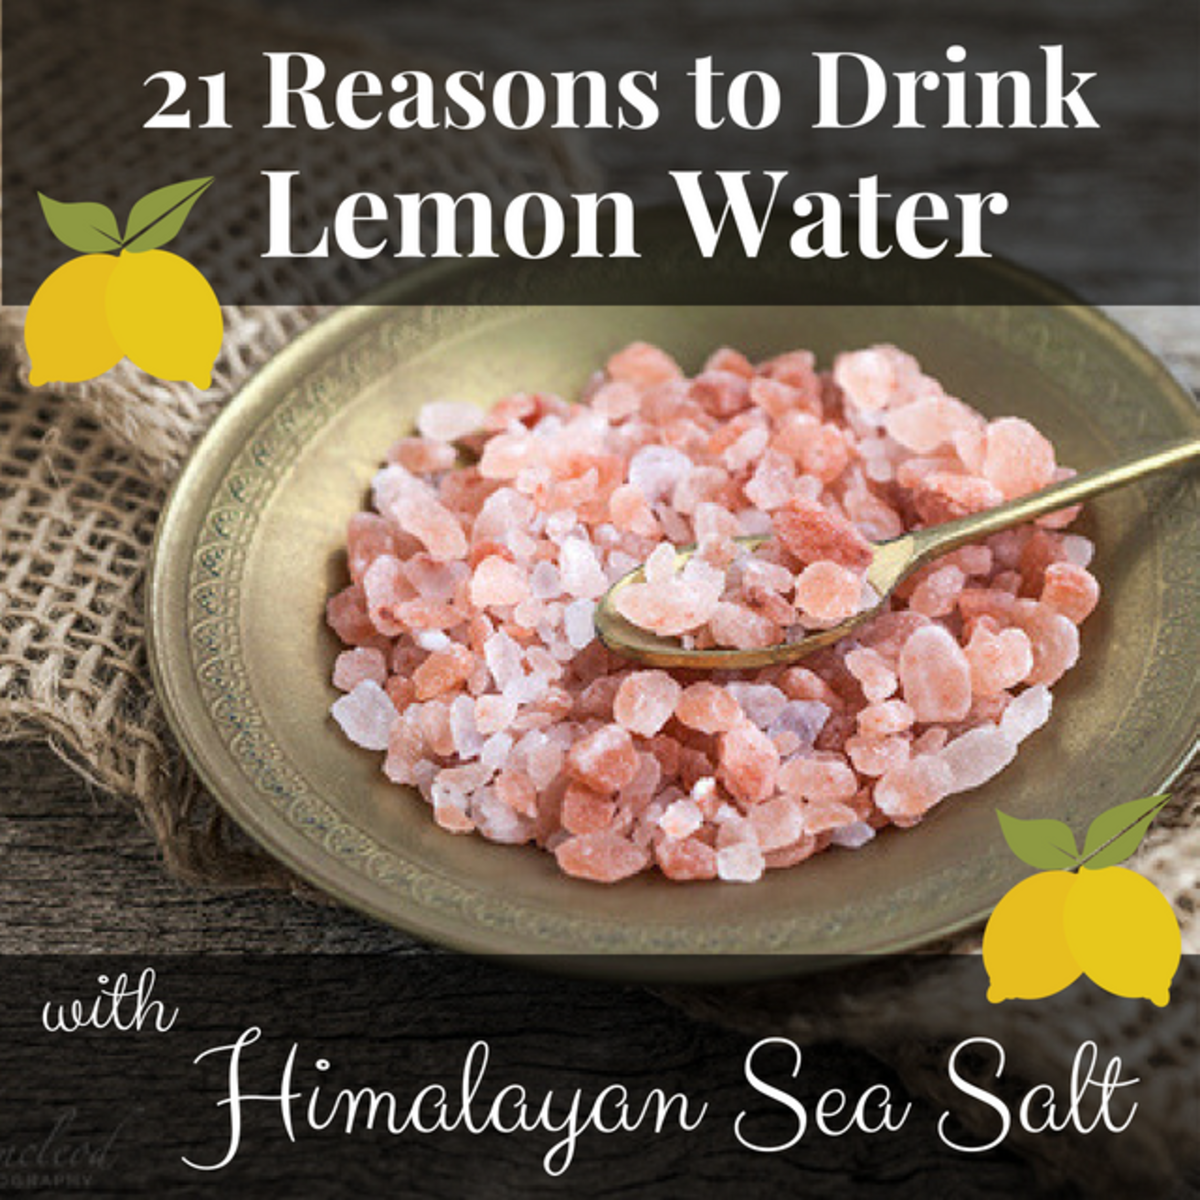 Lemon water and Himalayan sea salt provide calm, long-lasting energy that won't leave you crashing later in the morning.